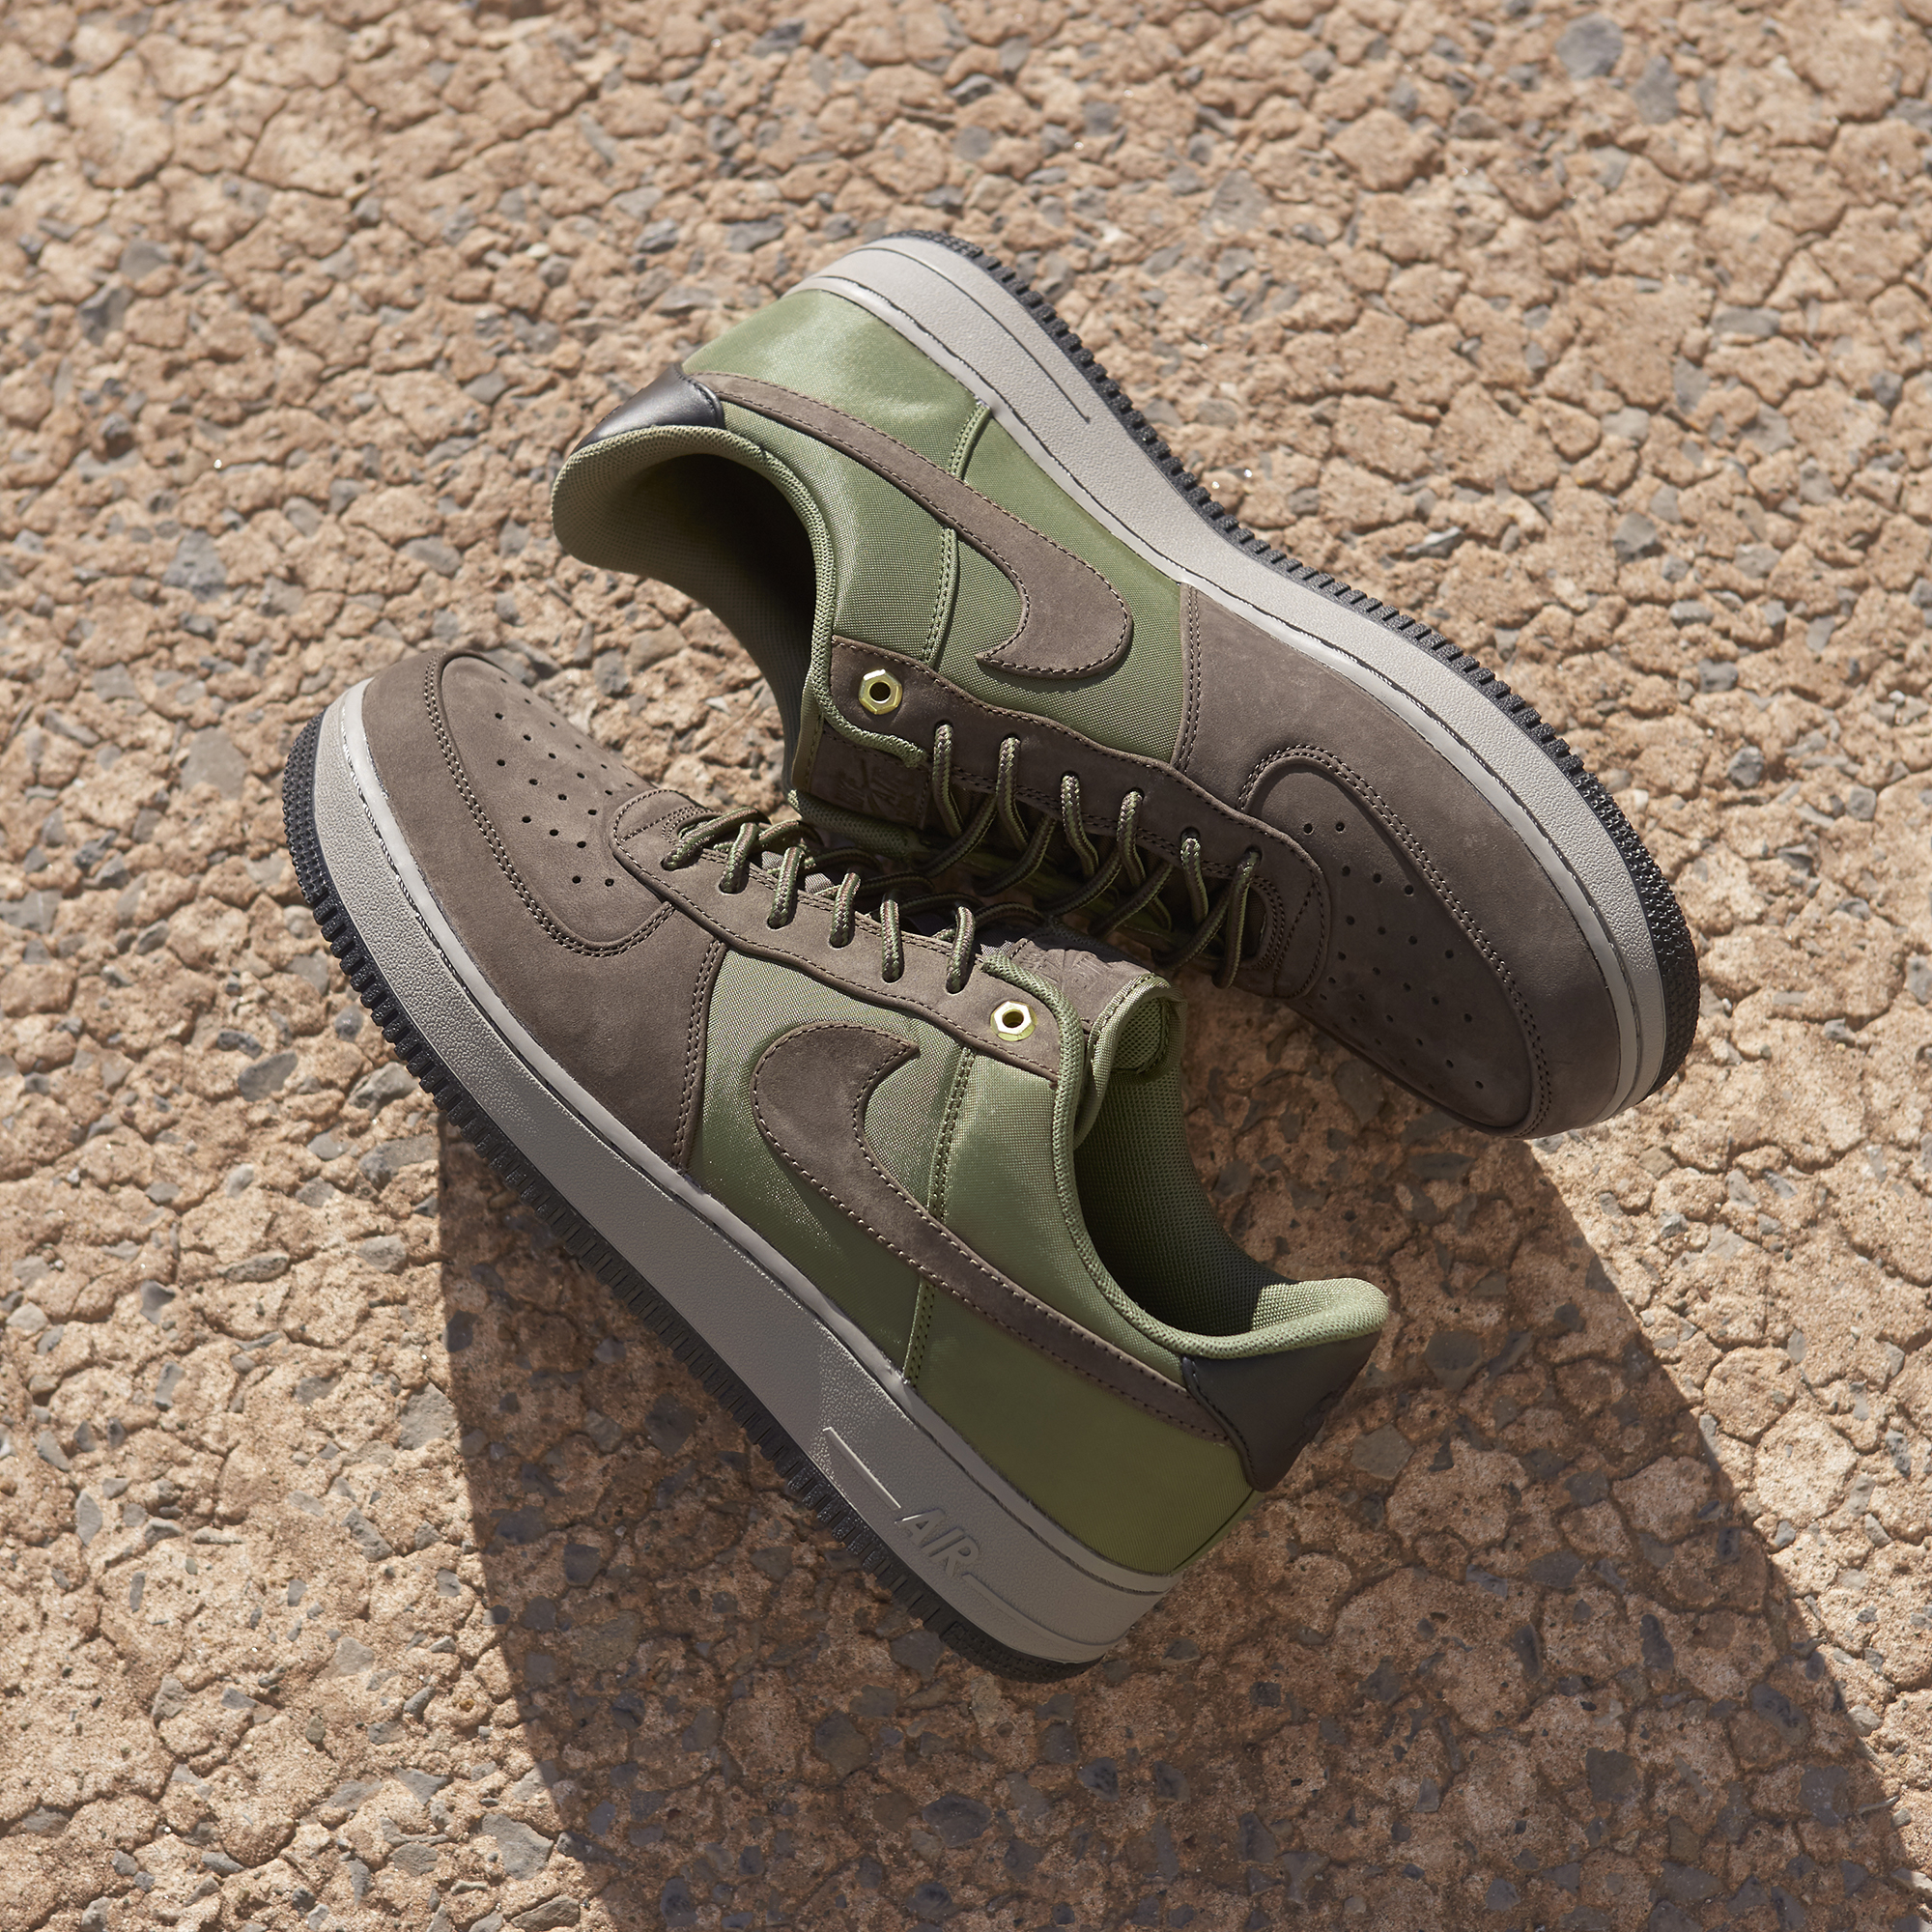 4d74be2d88 The Air Force 1 '07 Premier Low 'Baroque Brown/Army Olive' is available to  buy online only